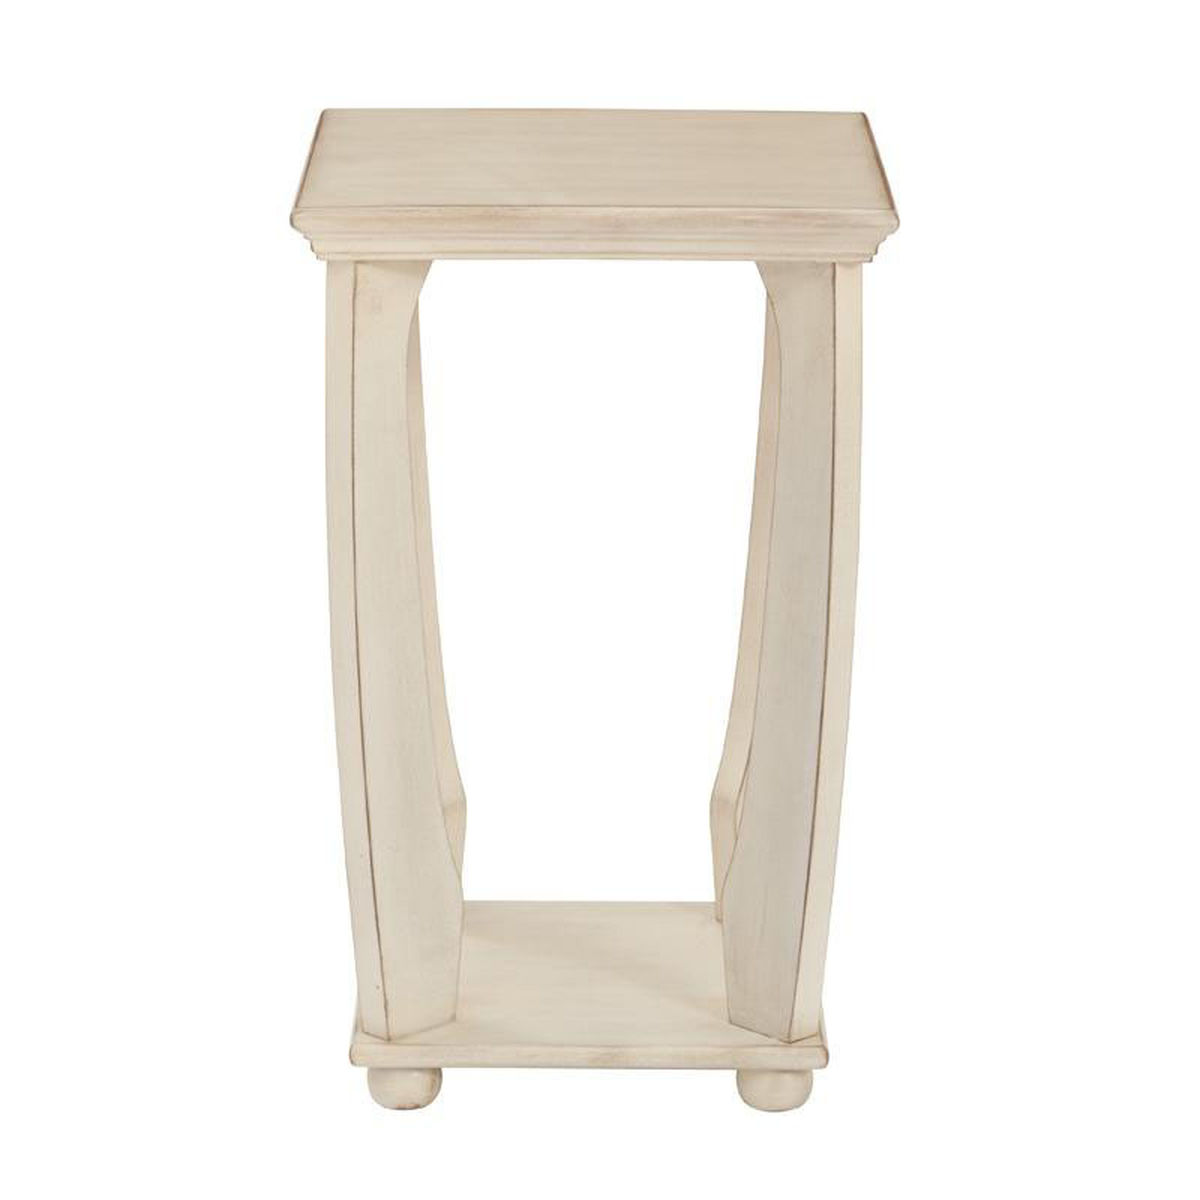 mila square accent table bizchair office star products our osp designs wood antique white now wrought iron replica furniture high end lighting coloured glass coffee side pair